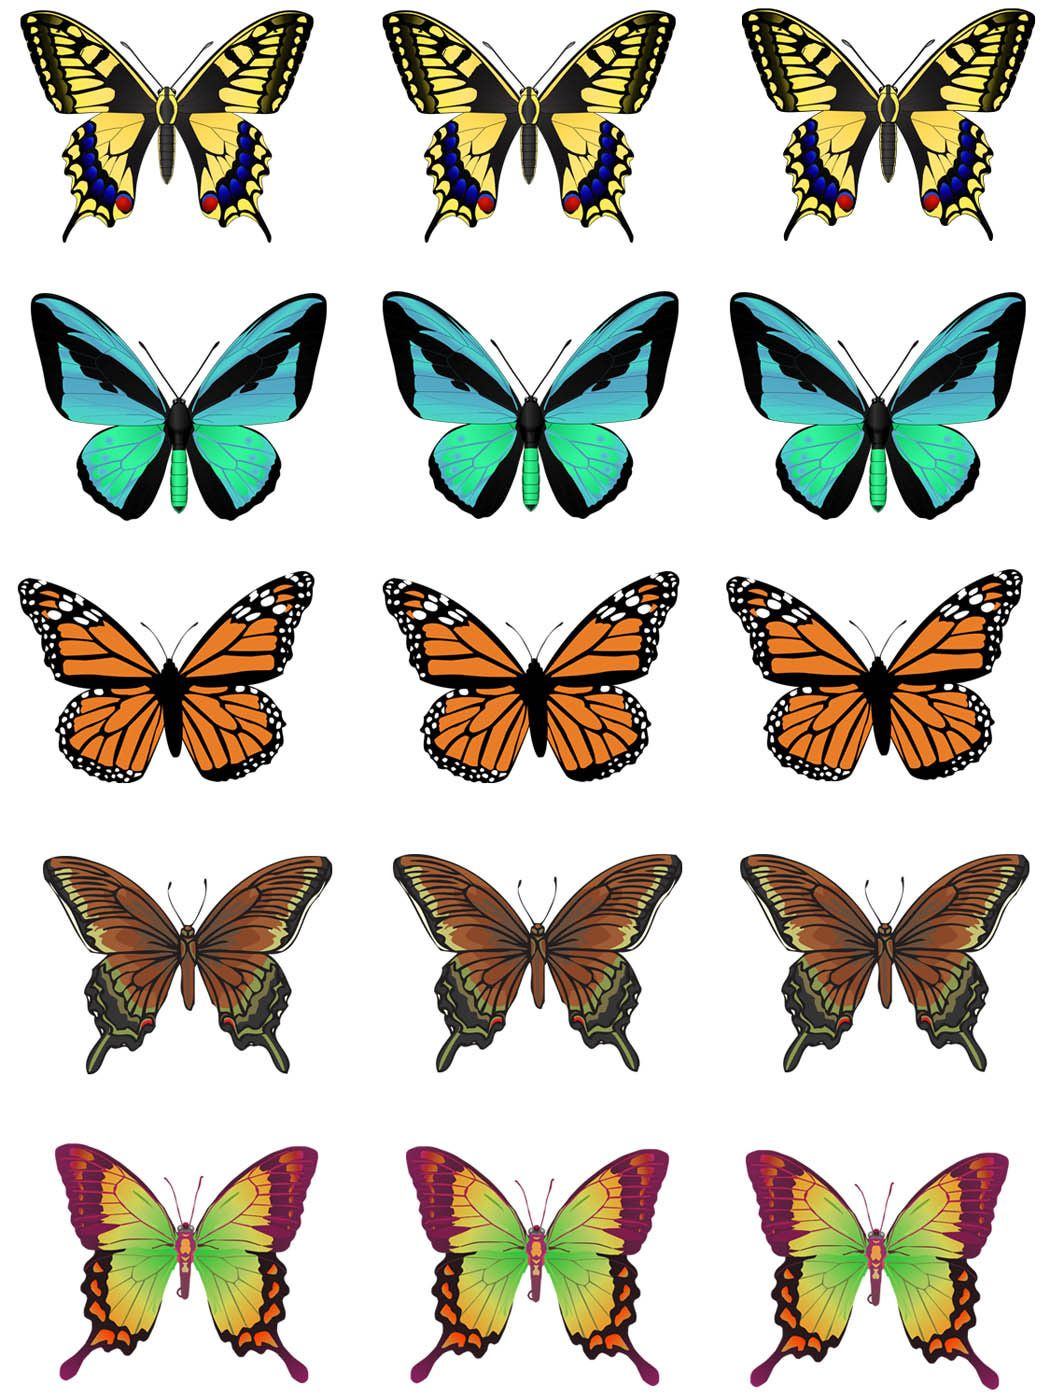 1050x1400 Make Your Own Unique Cupcake Toppers Clip Art, Butterfly